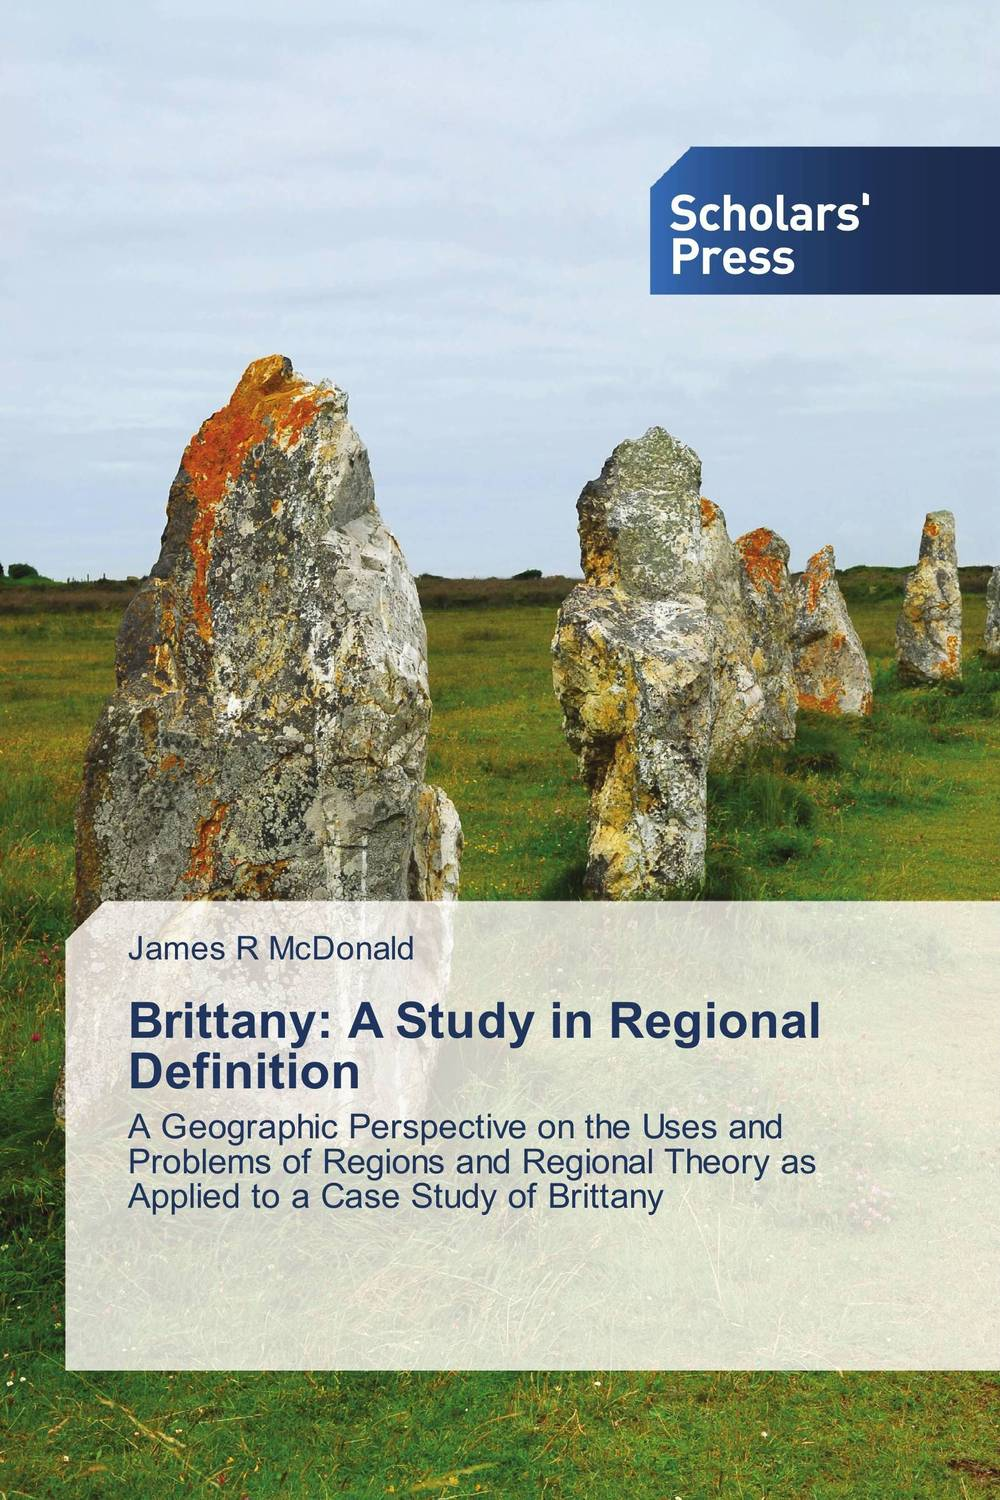 Brittany: A Study in Regional Definition